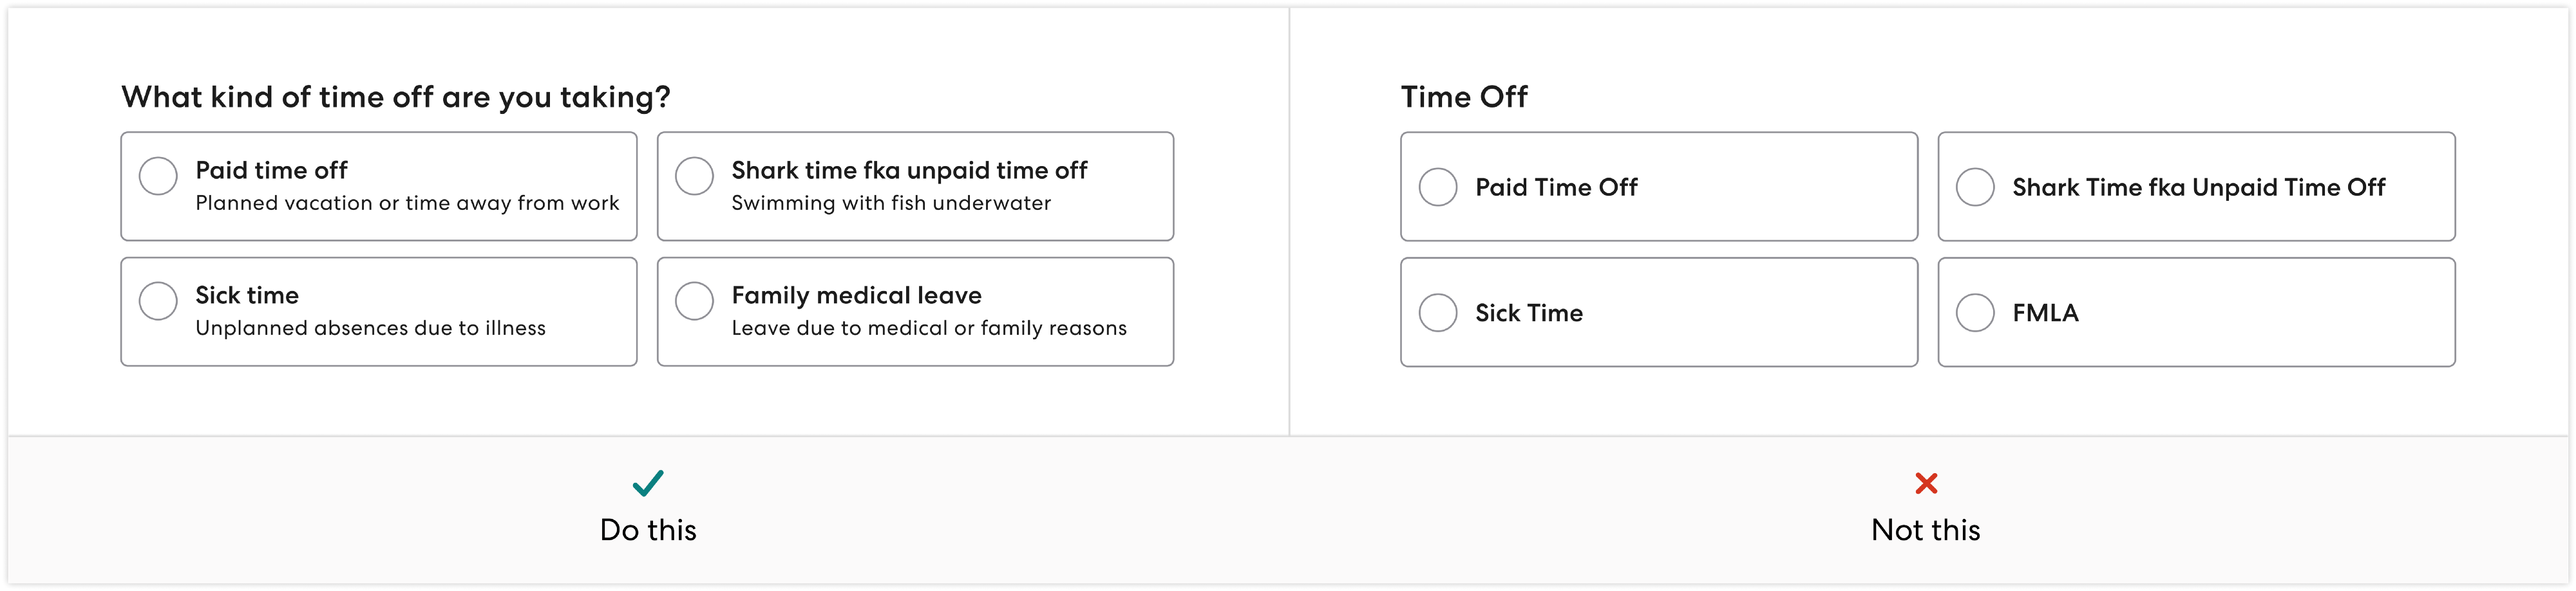 Radio button example constrasting complex and simple use of language.